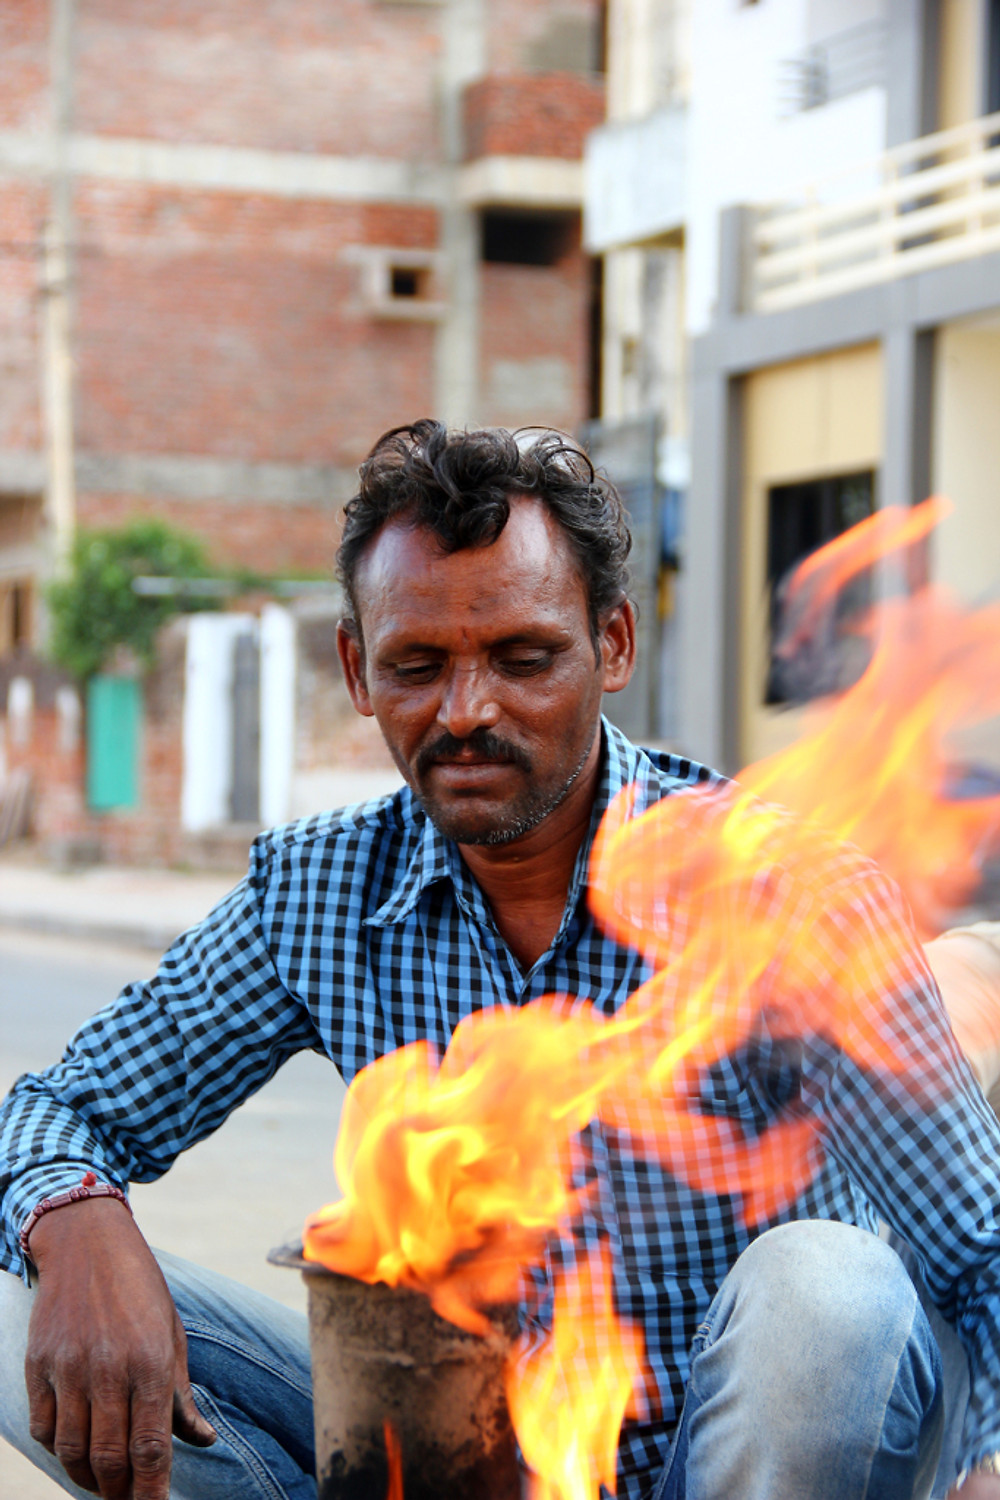 a man using a furnace ieclectica Photograph by Ashwathi